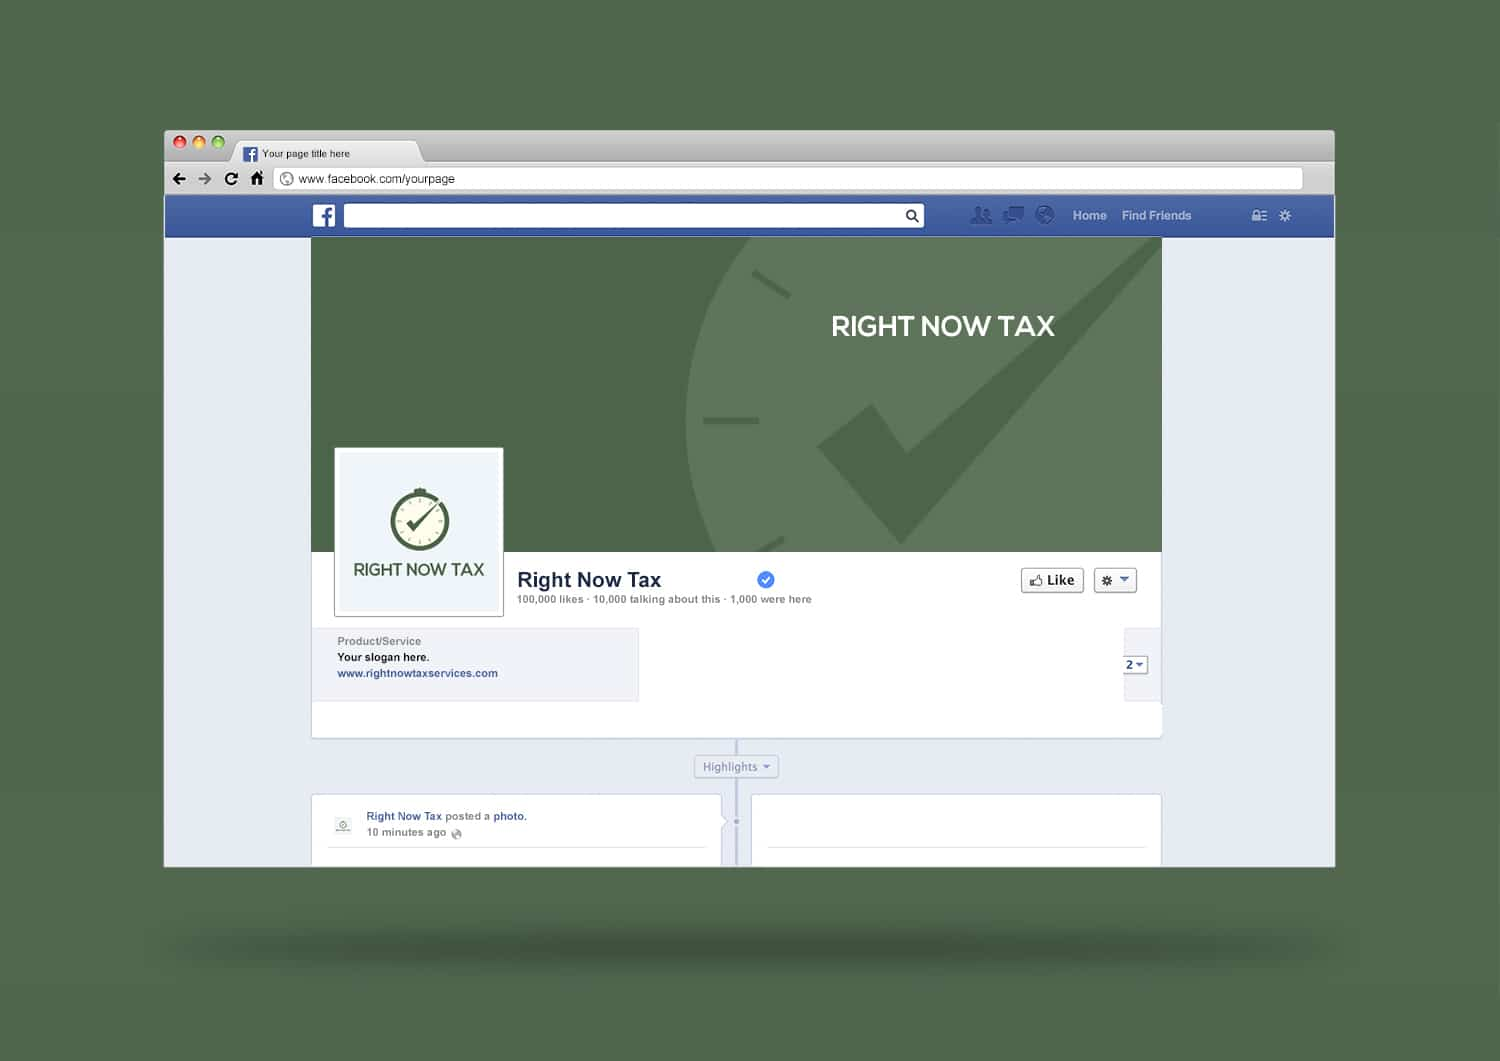 Right Now Tax Facebook